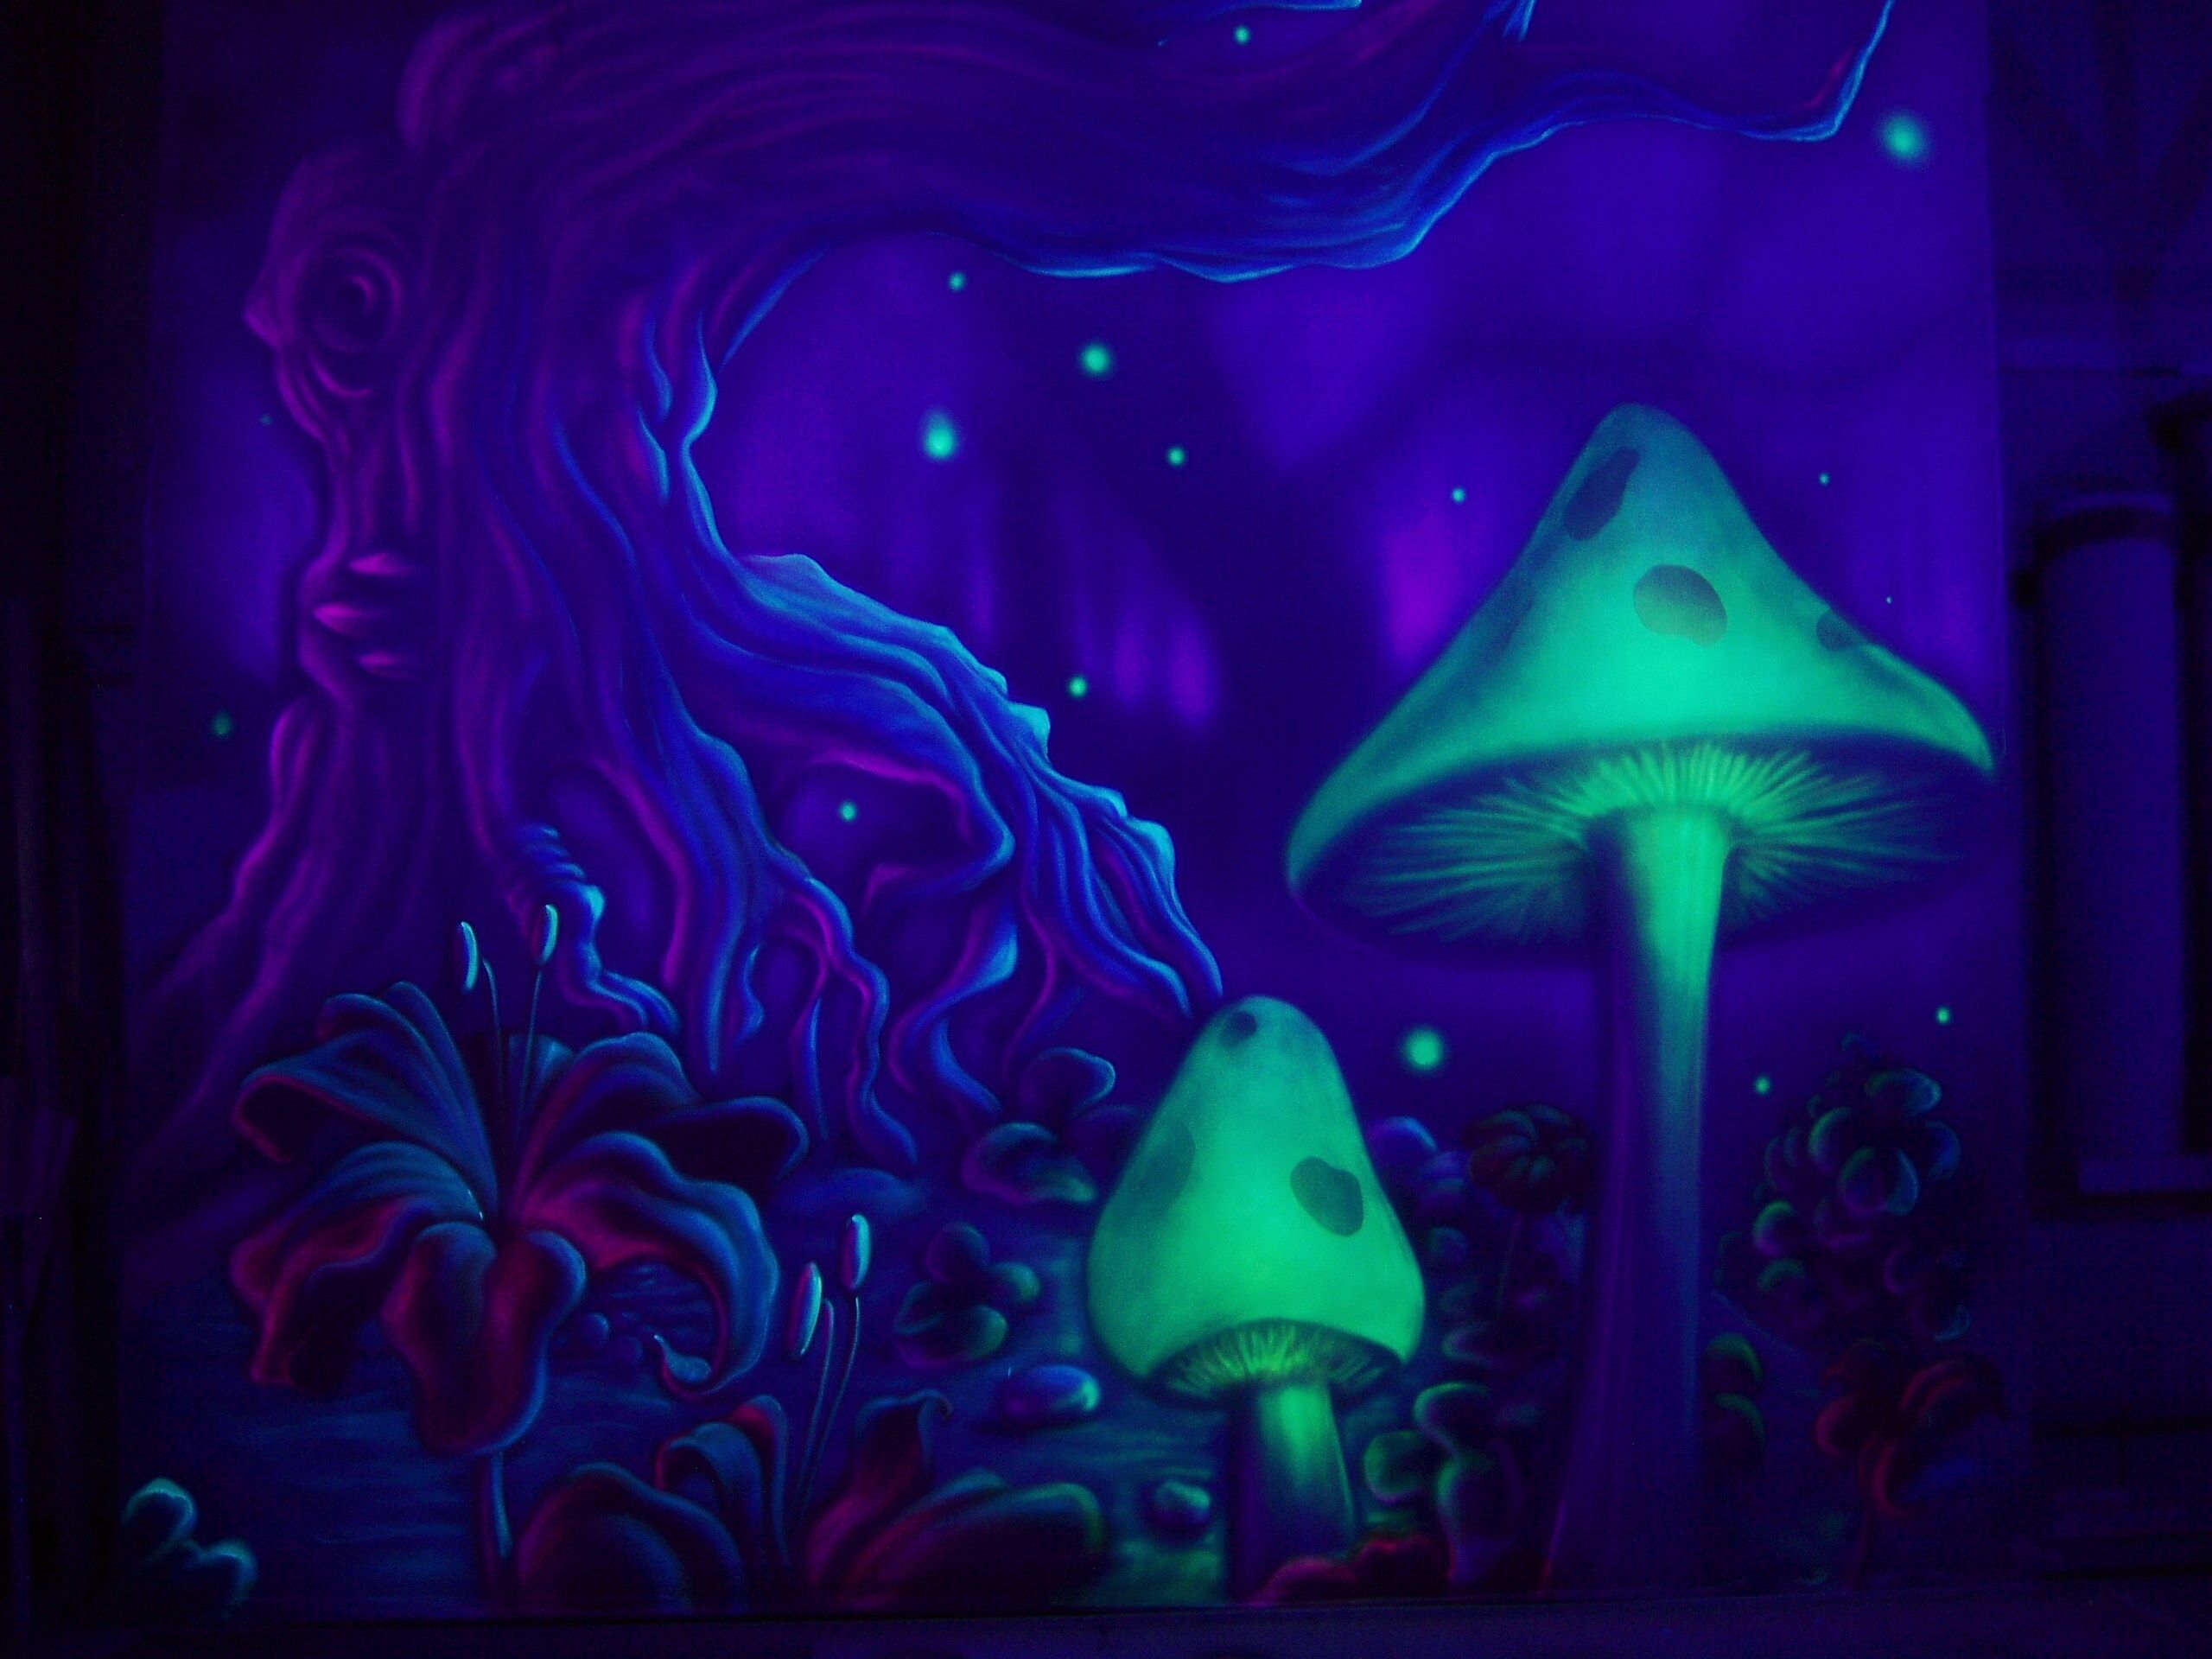 Positive Drug Stories Please Submit Mushroom wallpaper